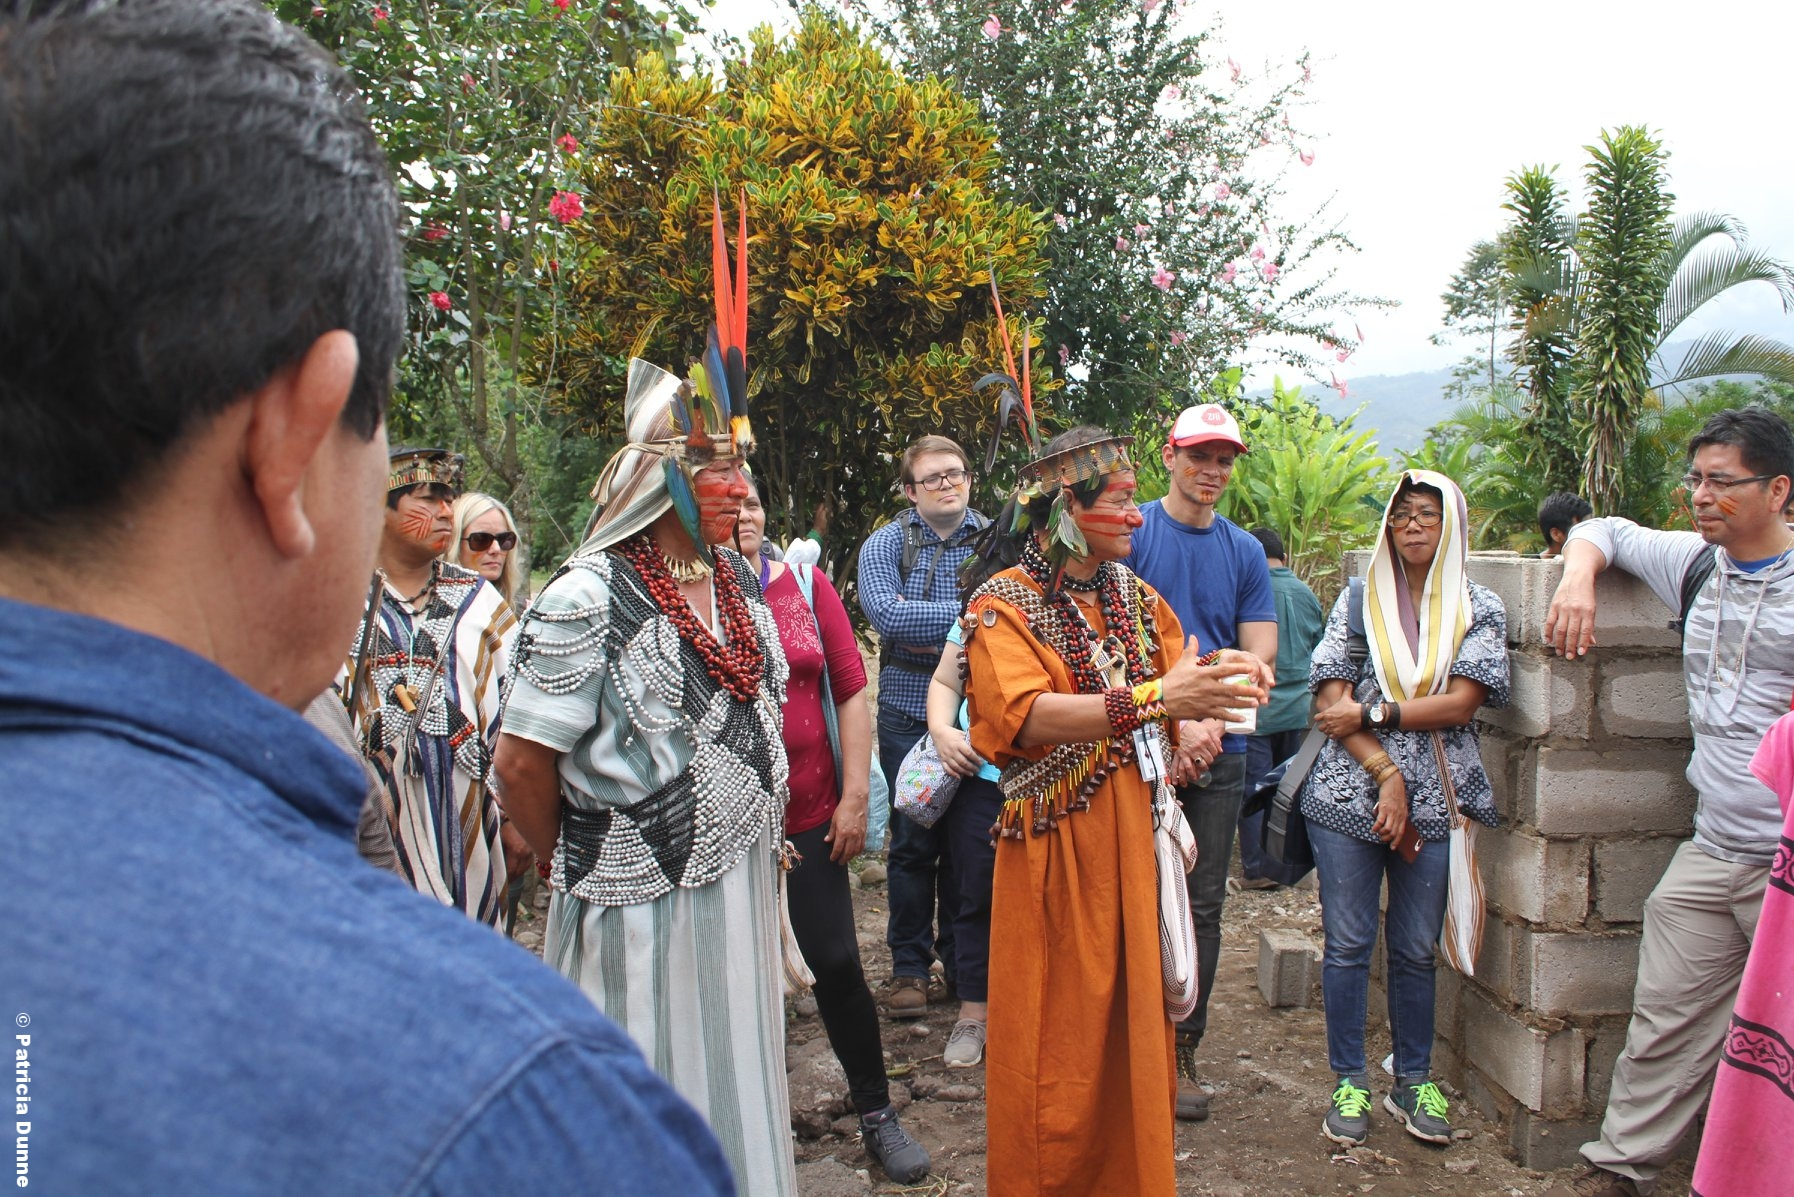 Leaders from the Pampa Michi native community and ARPI-SC explaining the subproject they are implementing with support from DGM Peru